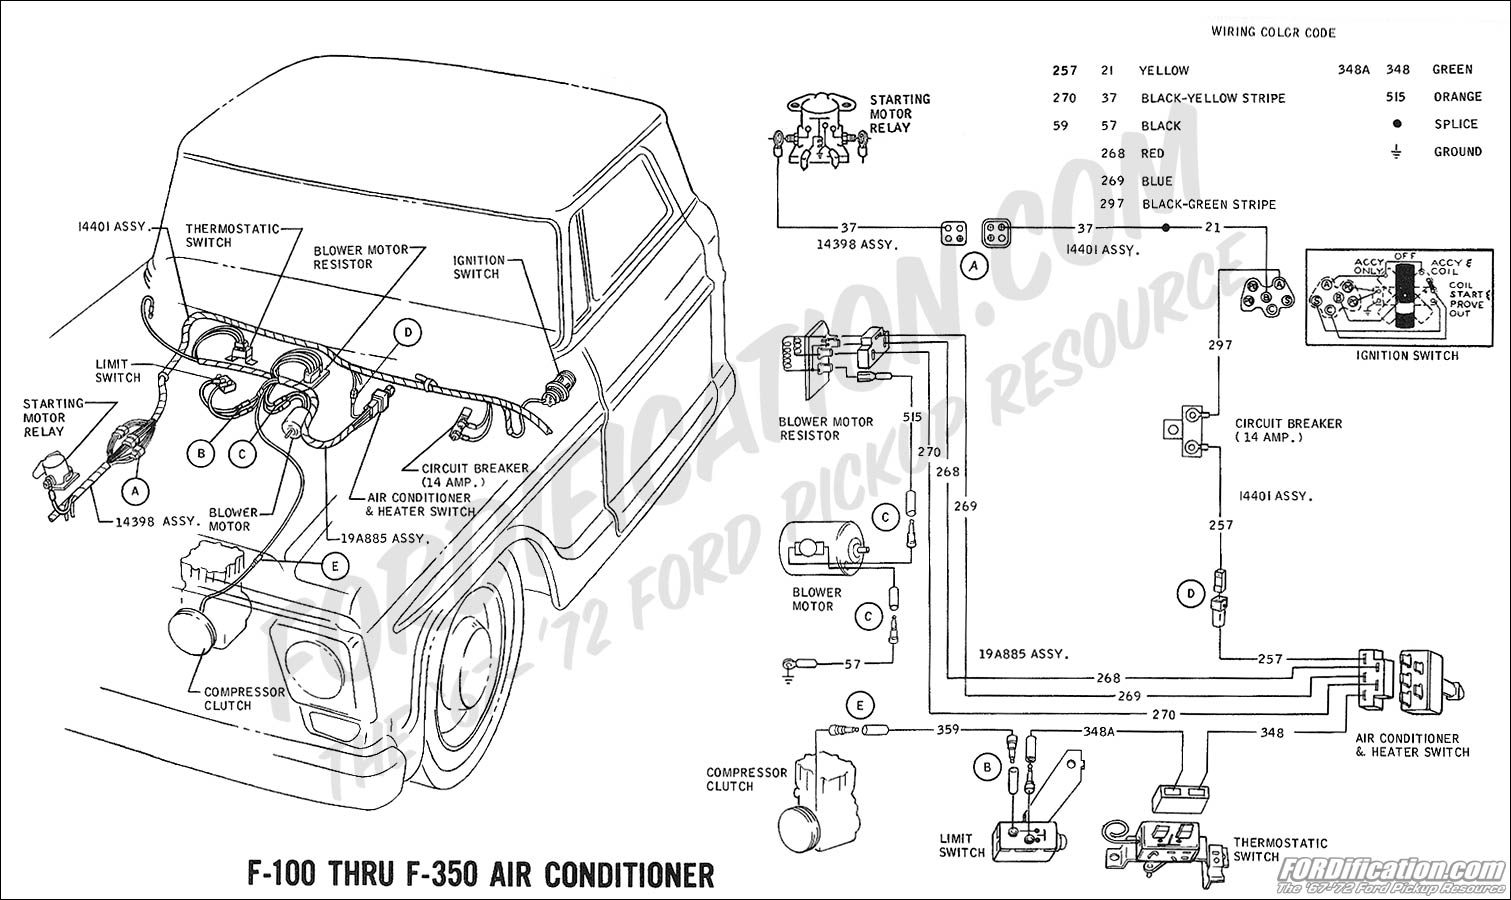 78 Chevrolet Pickup 350 Wiring Diagram Libraries Library1969 F 100 Thru Air Conditioner